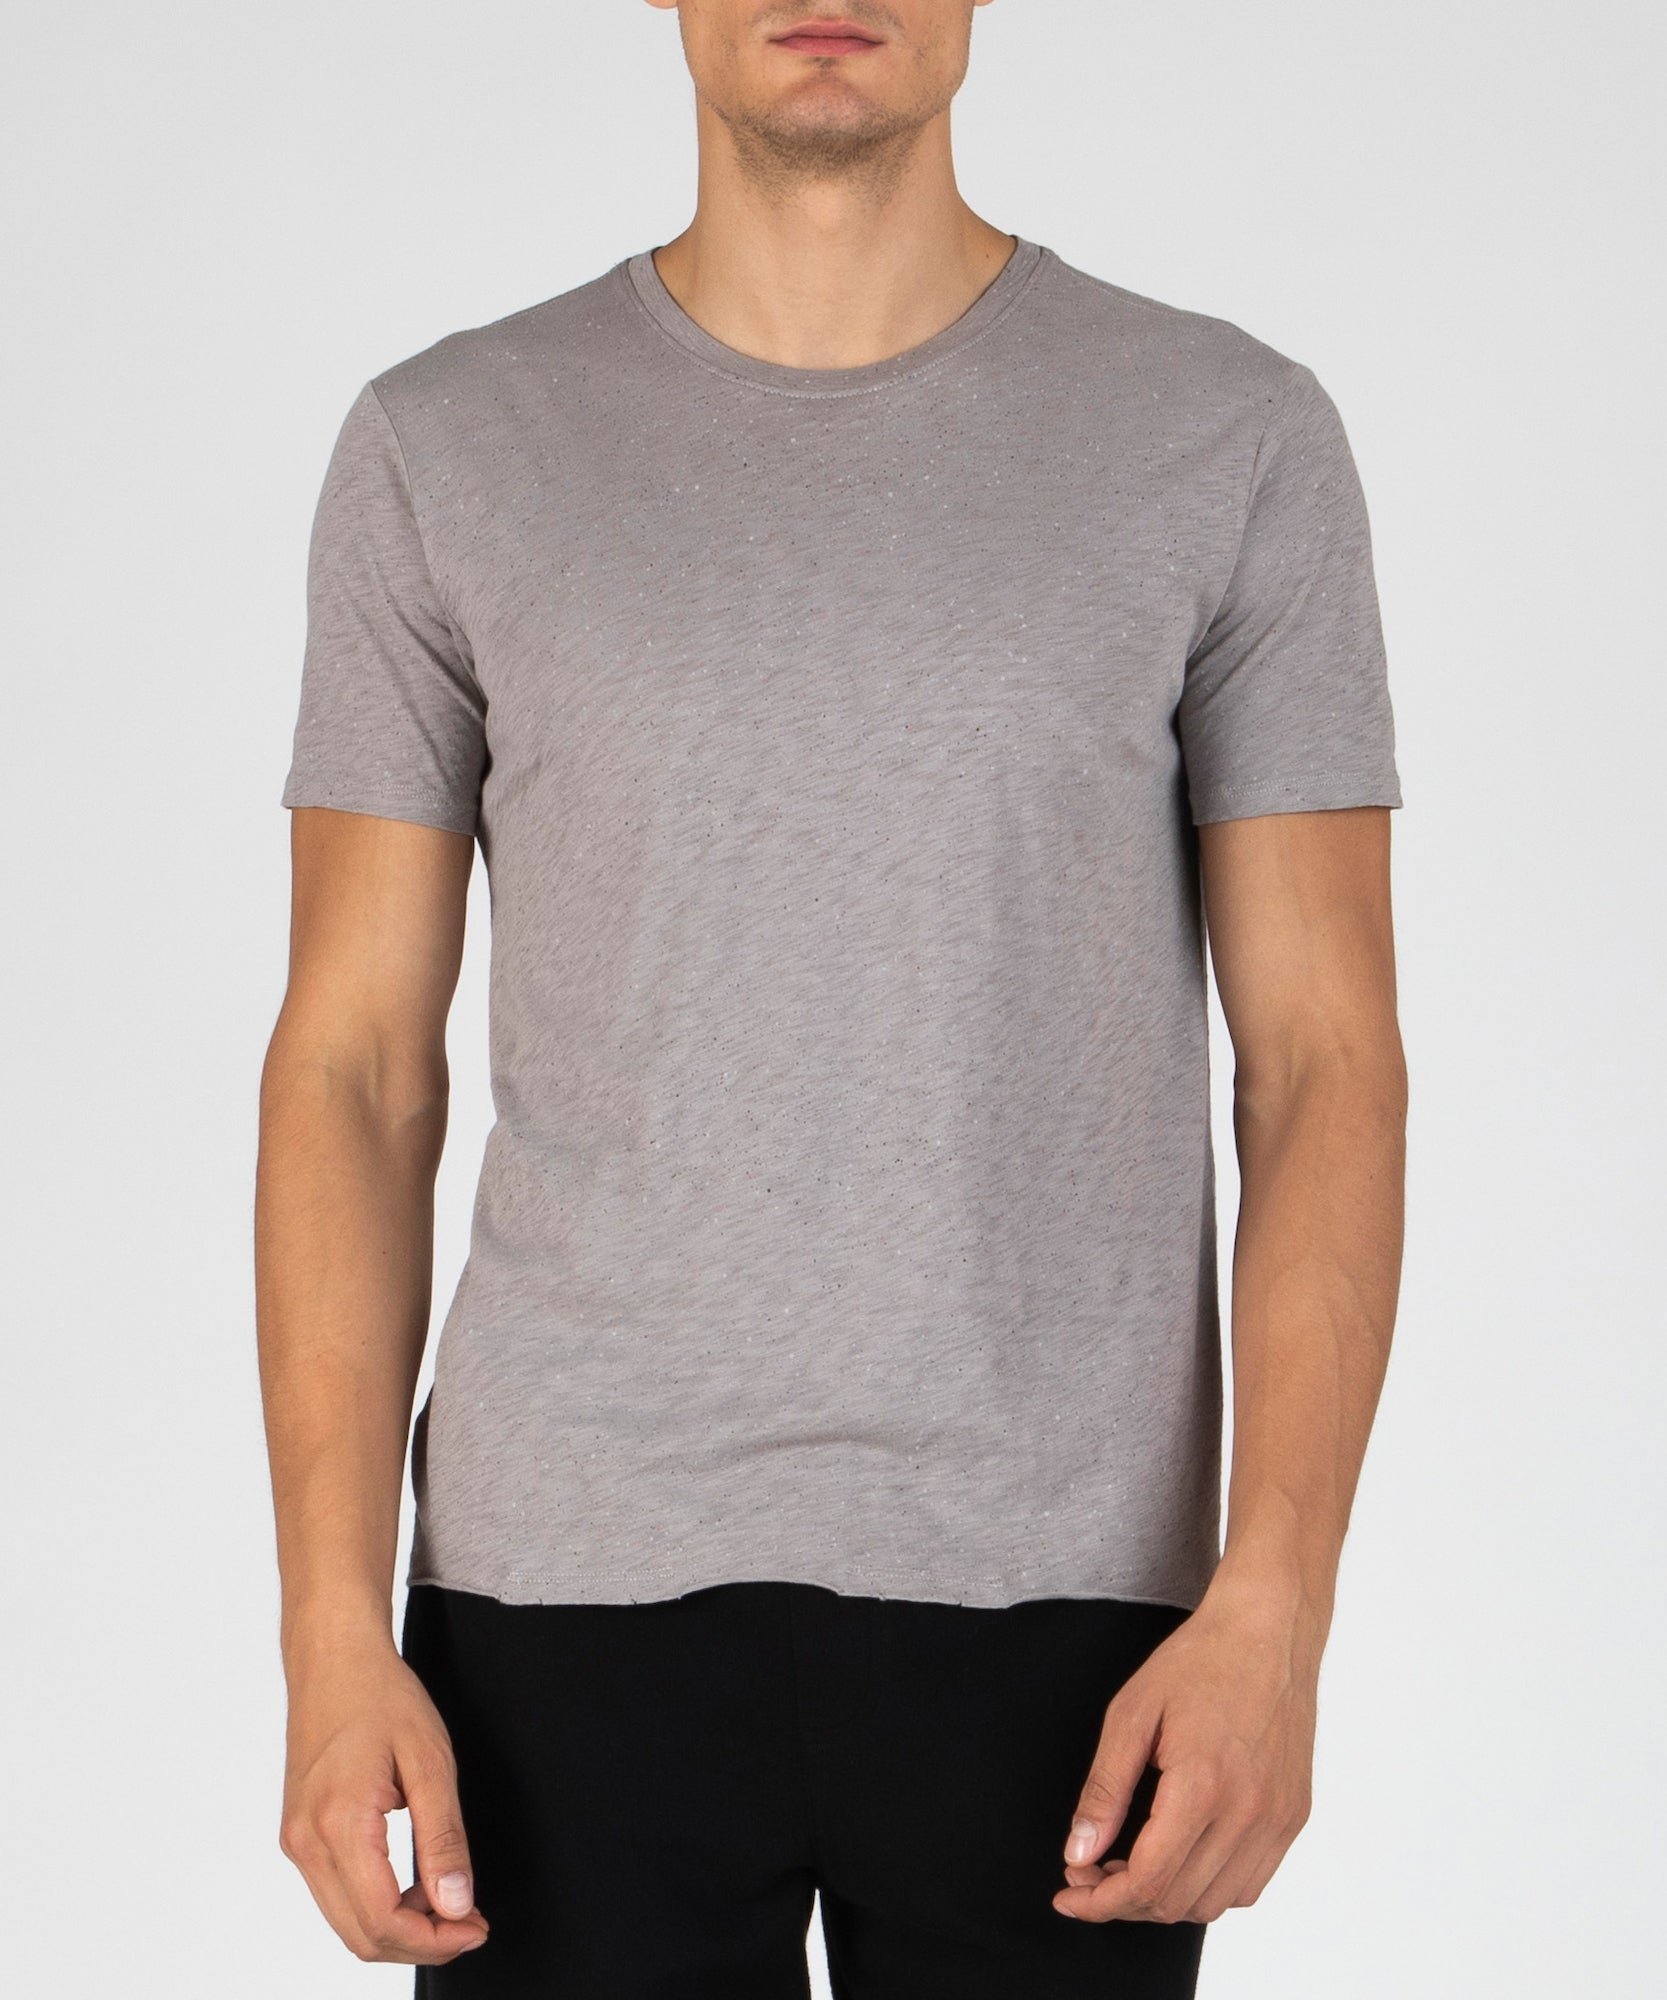 Concrete Sprayed Print Jersey Crew Neck Tee - Men's Luxe Tee by ATM Anthony Thomas Melillo